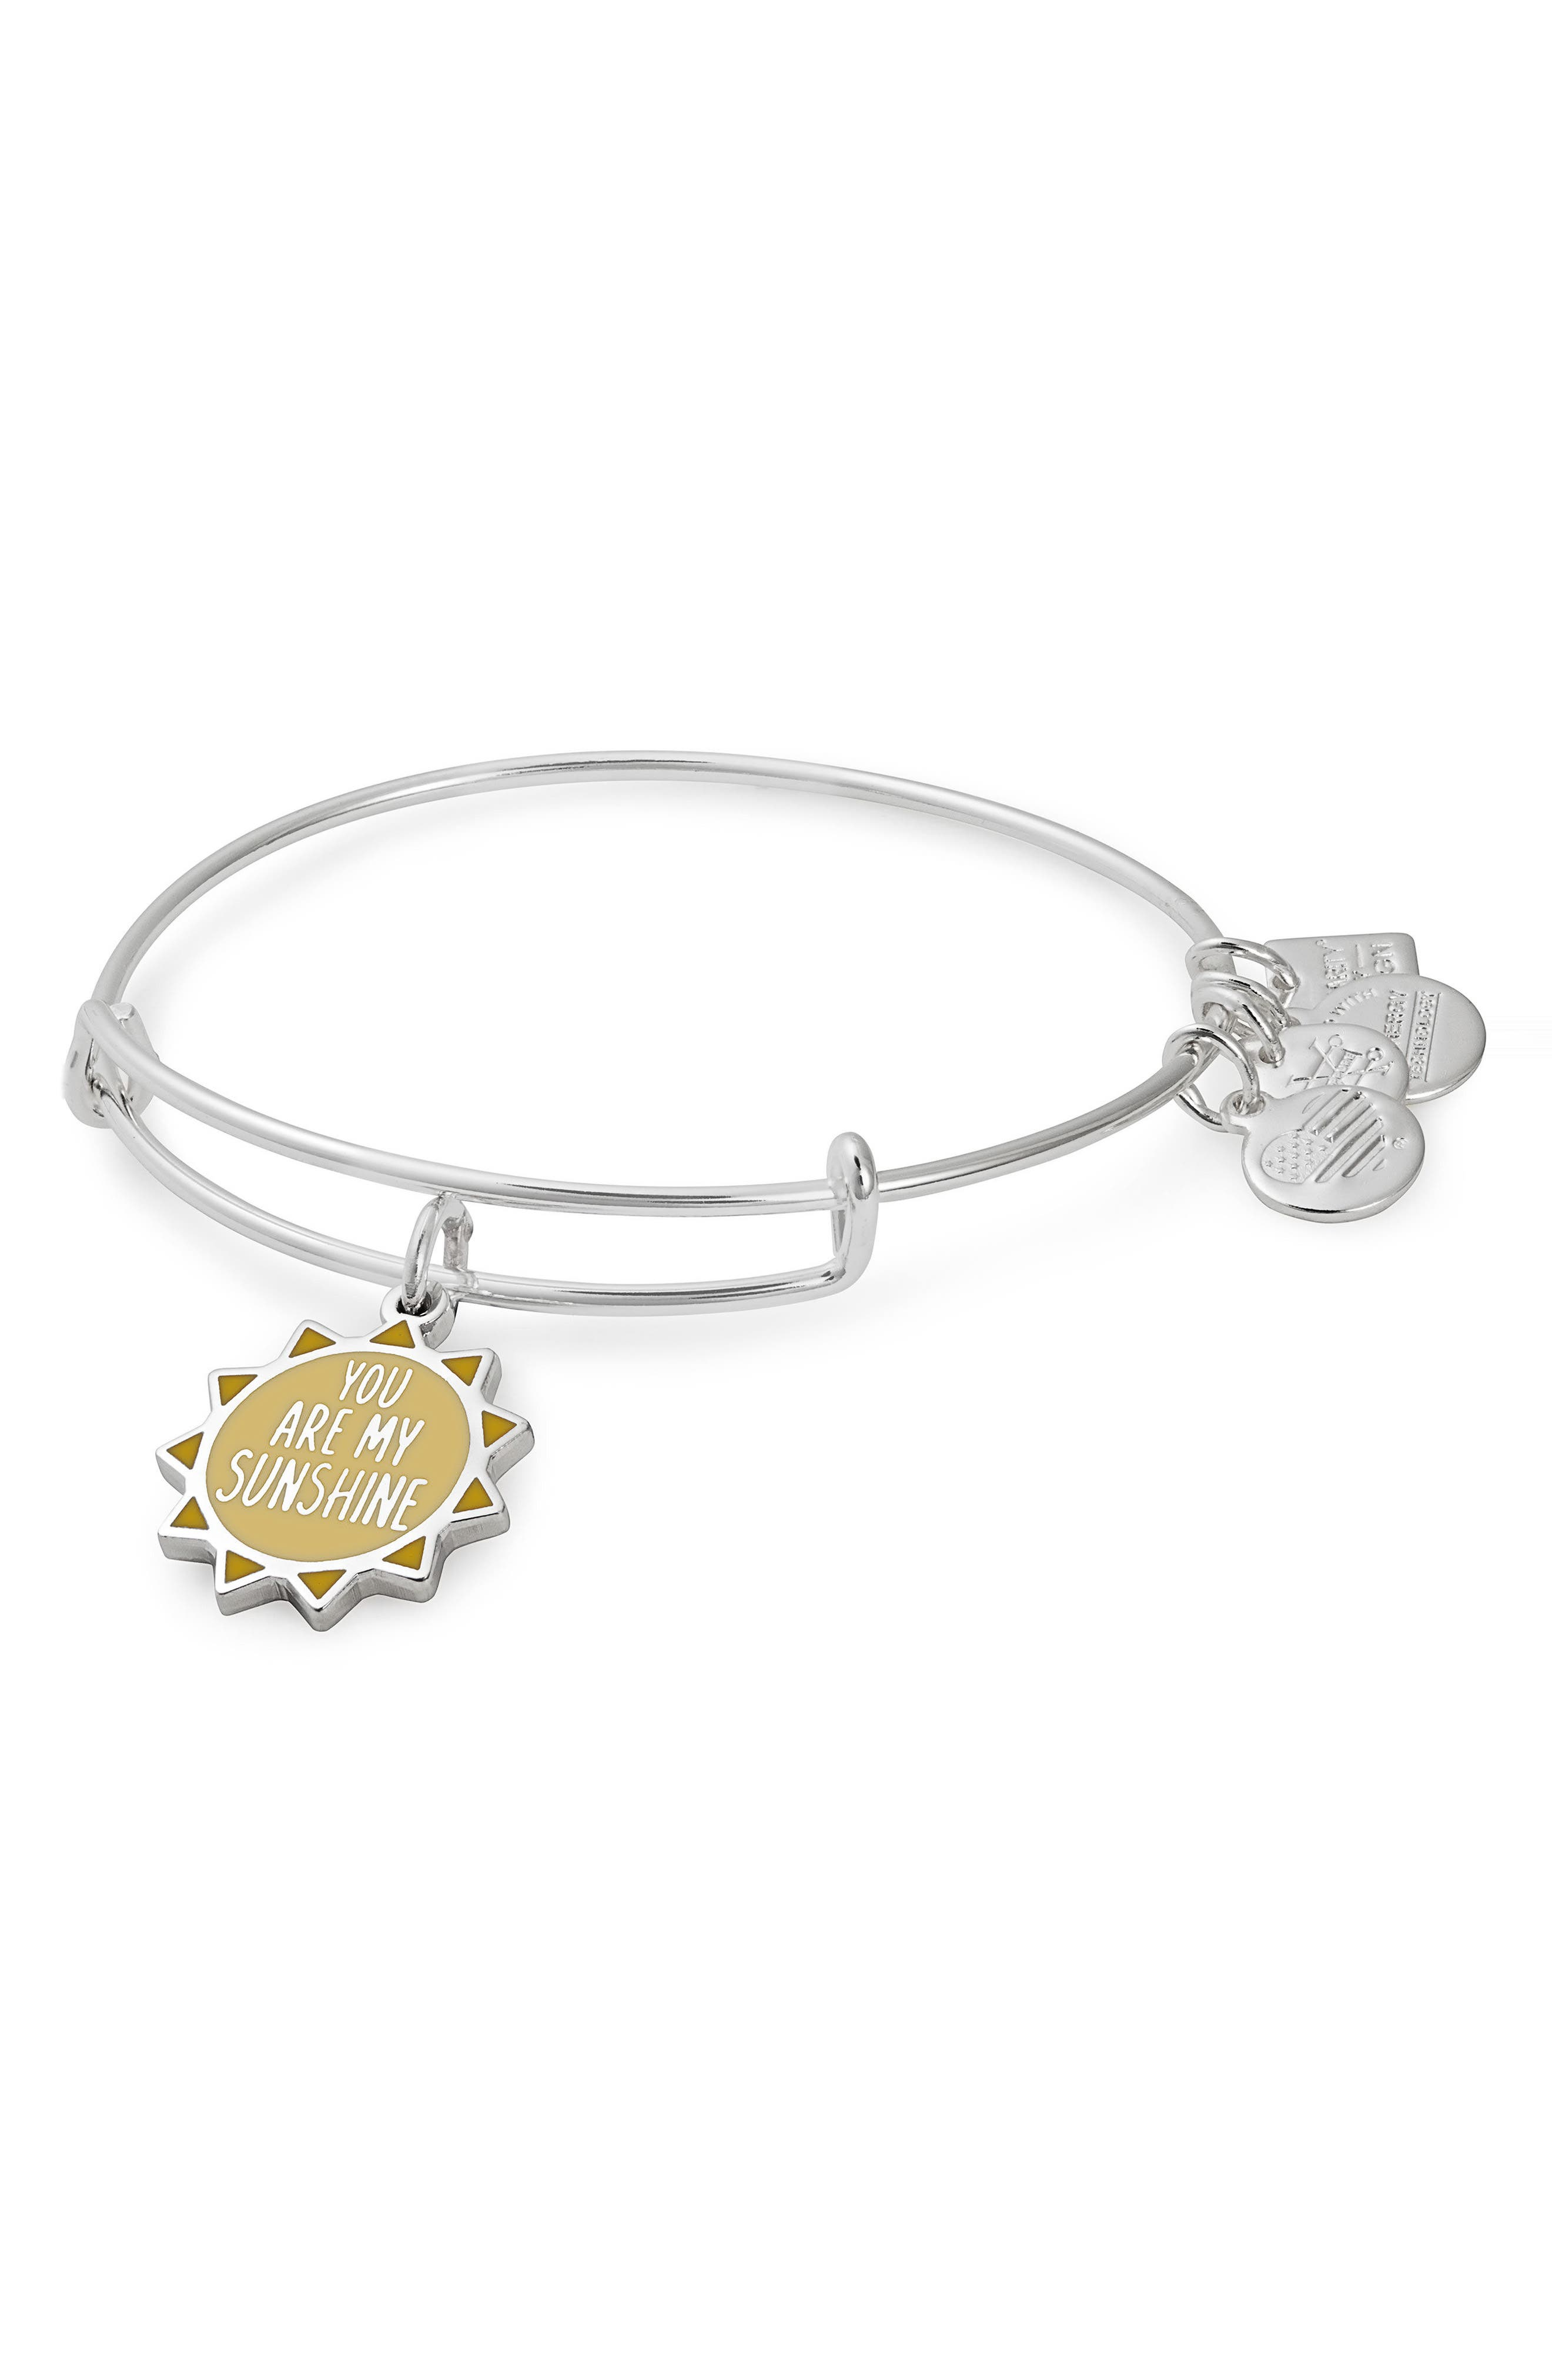 Charity by Design You Are My Sunshine Charm Bracelet,                             Main thumbnail 1, color,                             040